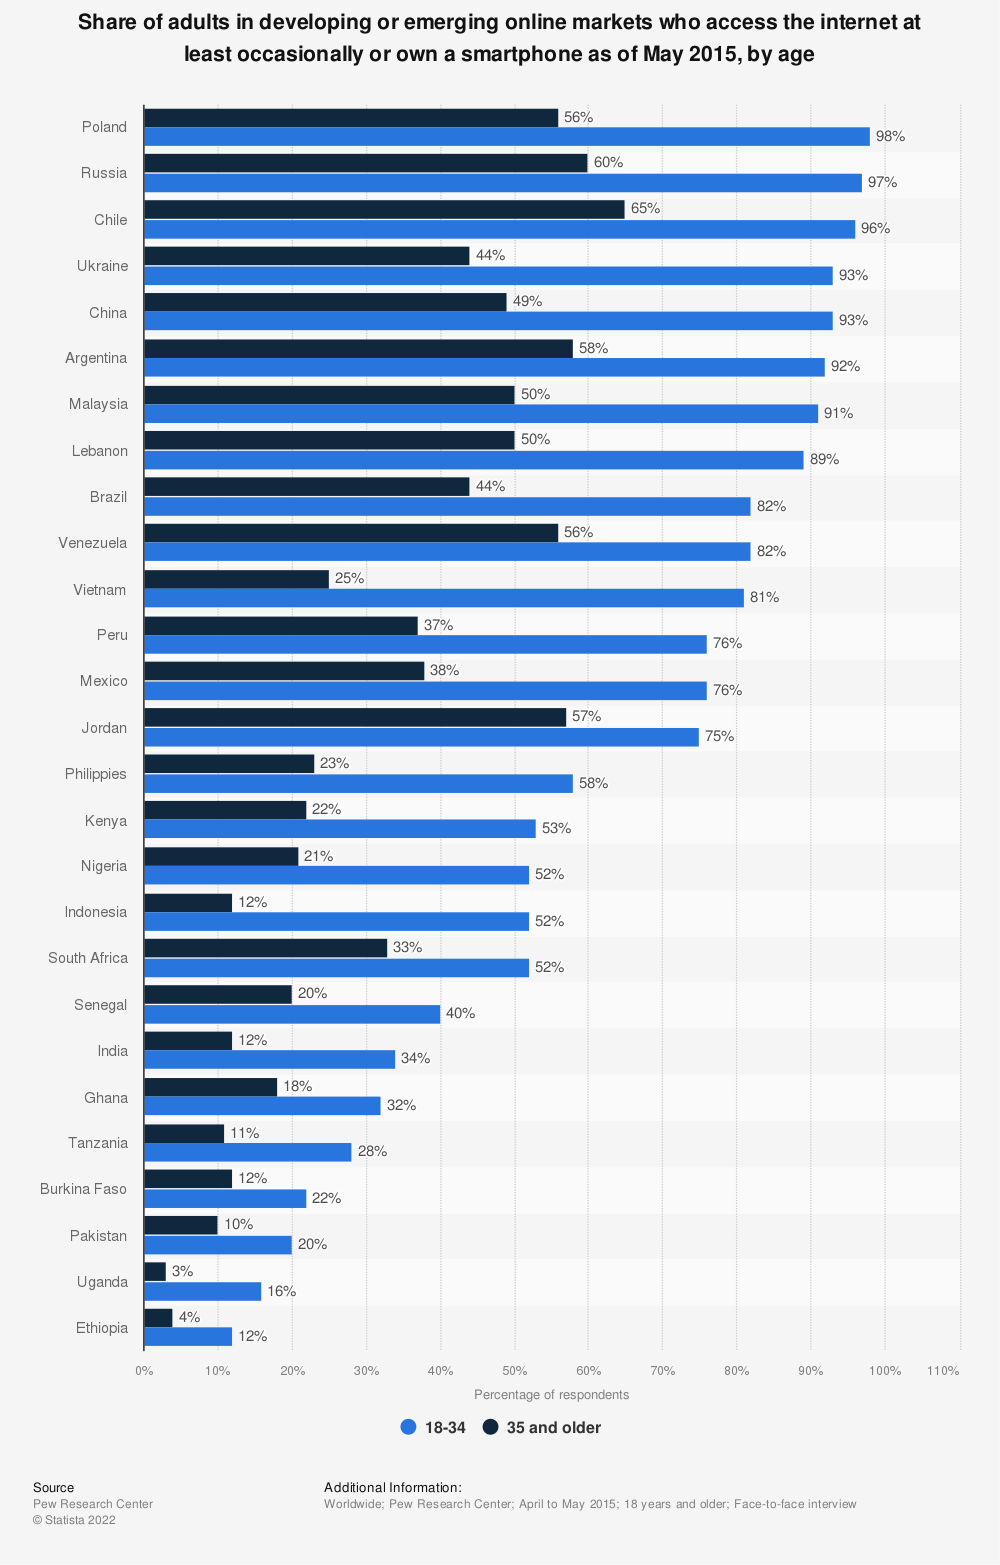 Statistic: Share of adults in developing or emerging online markets who access the internet at least occasionally or own a smartphone as of May 2015, by age | Statista